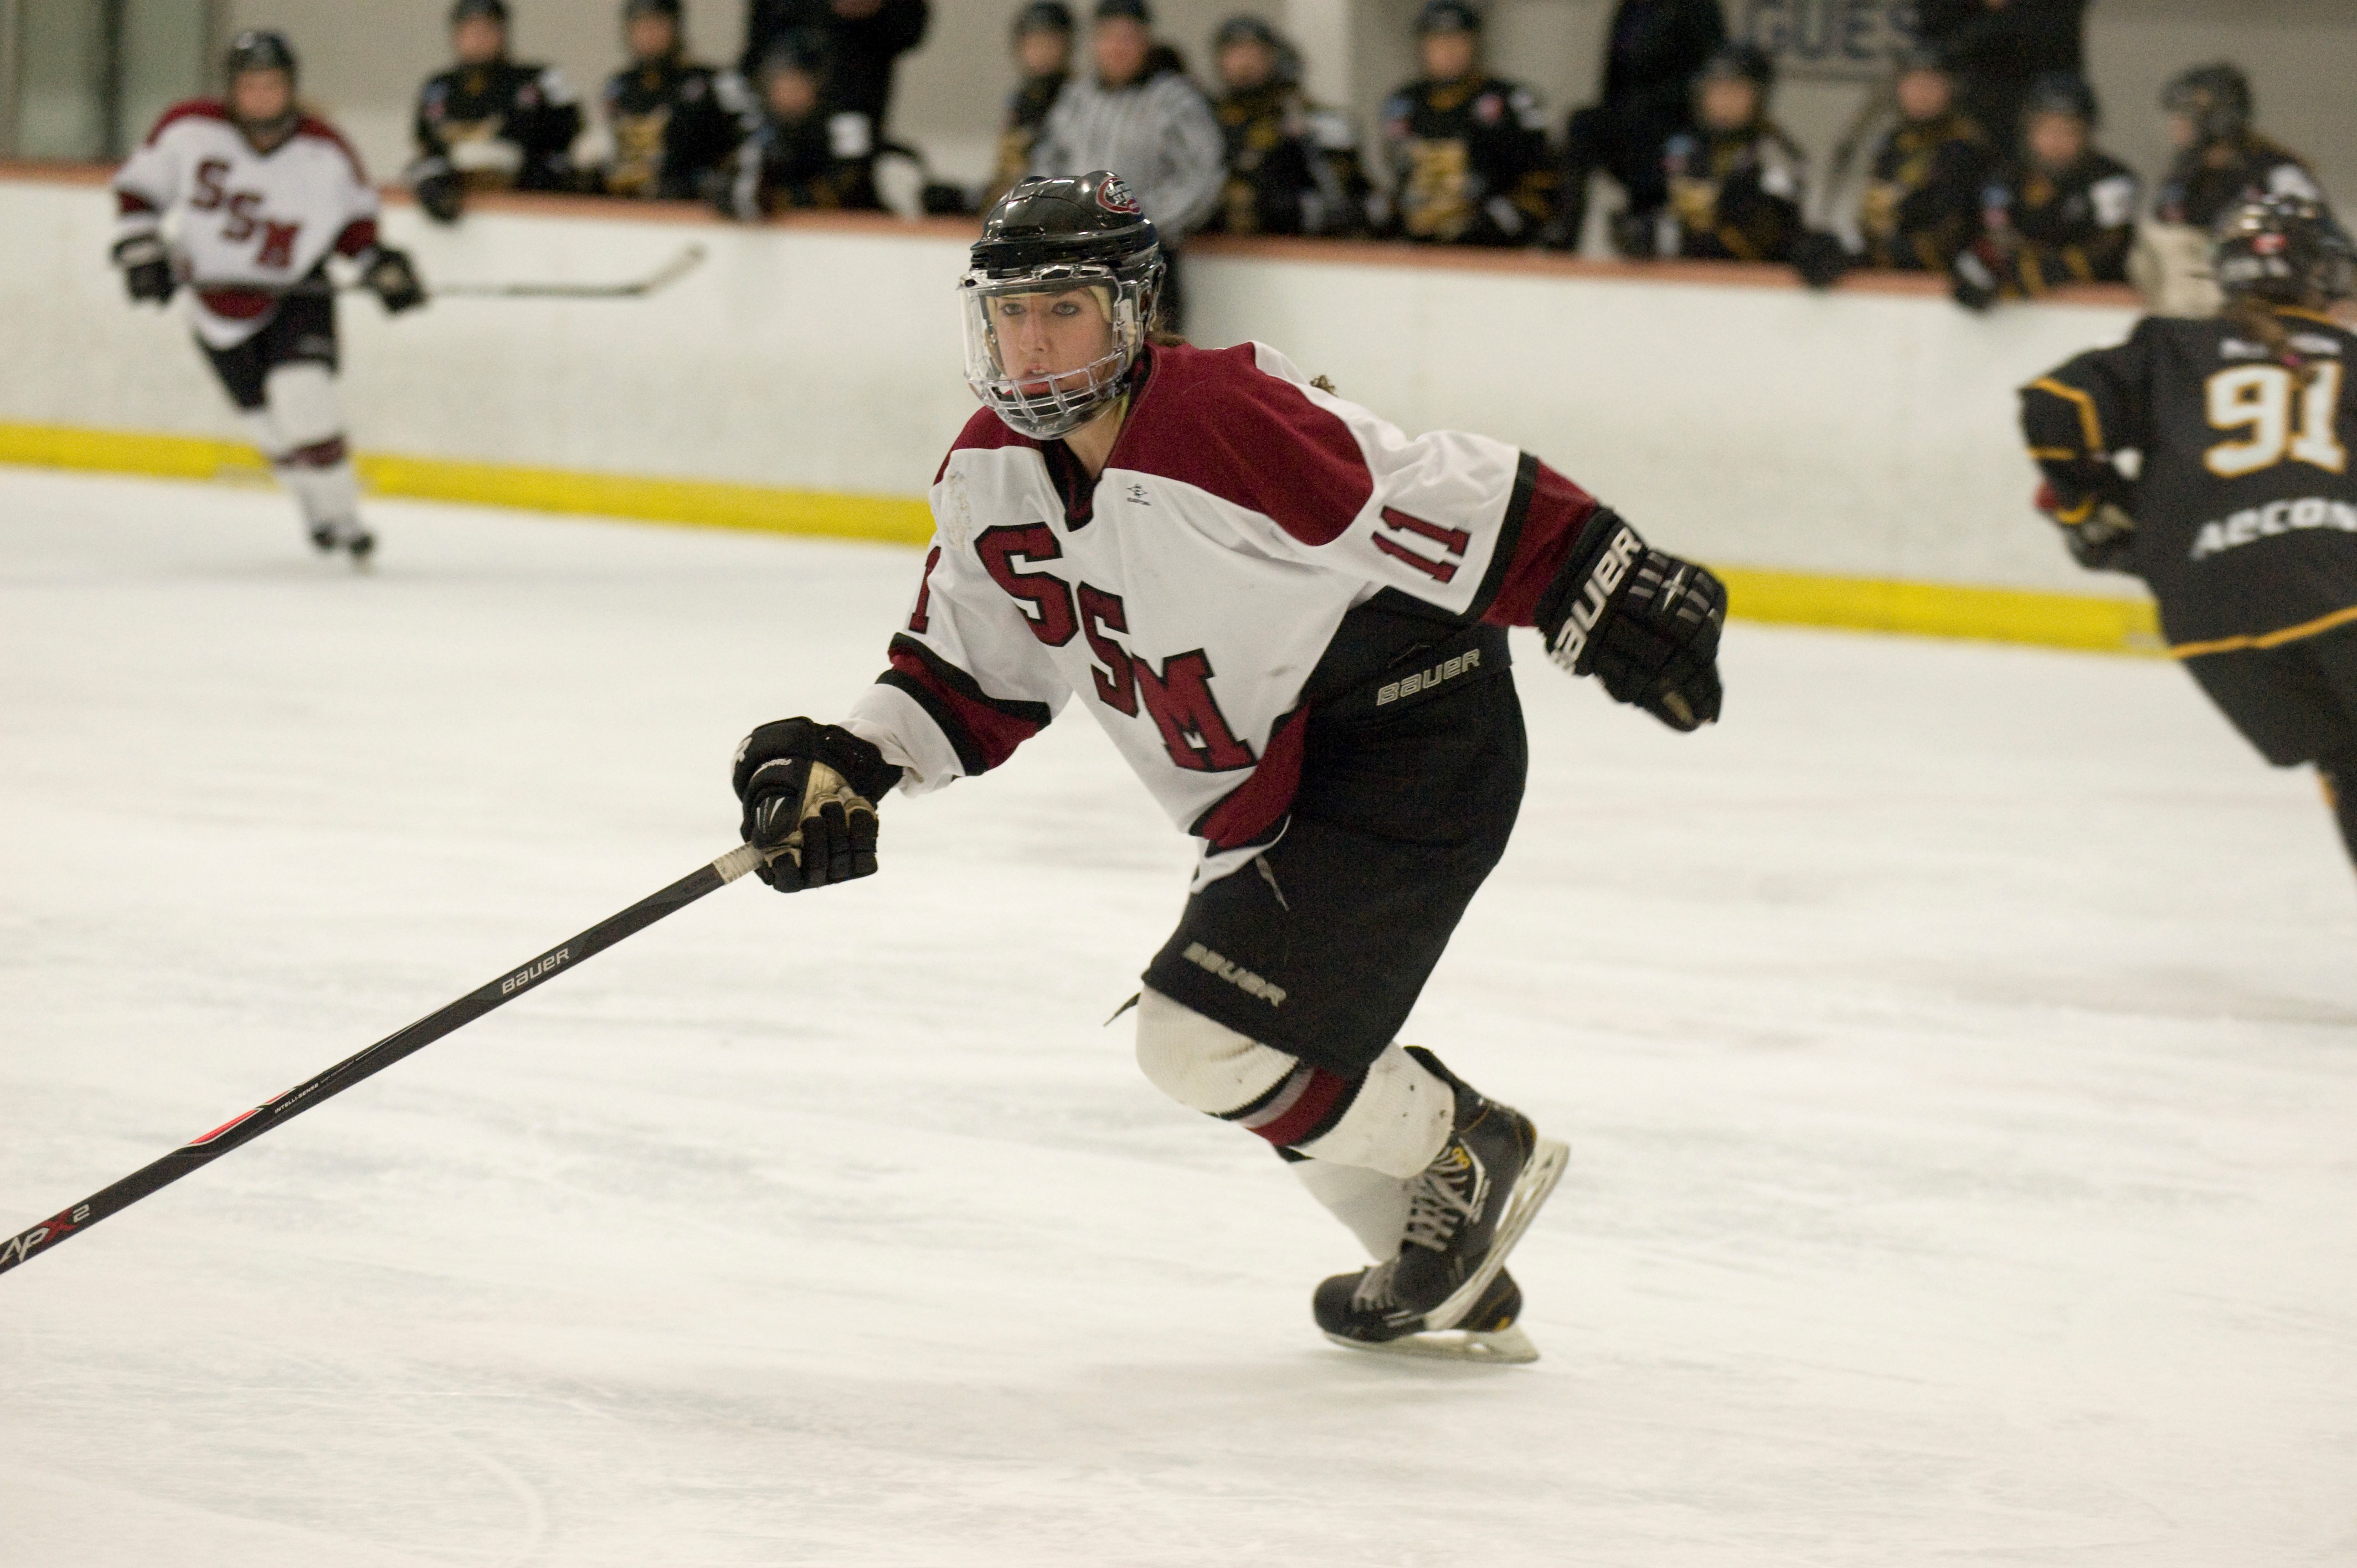 Melissa Samoskevich is the American Family Insurance ALL-USA Girls Hockey Player of the Year (Photo: Jerome Turbyville)